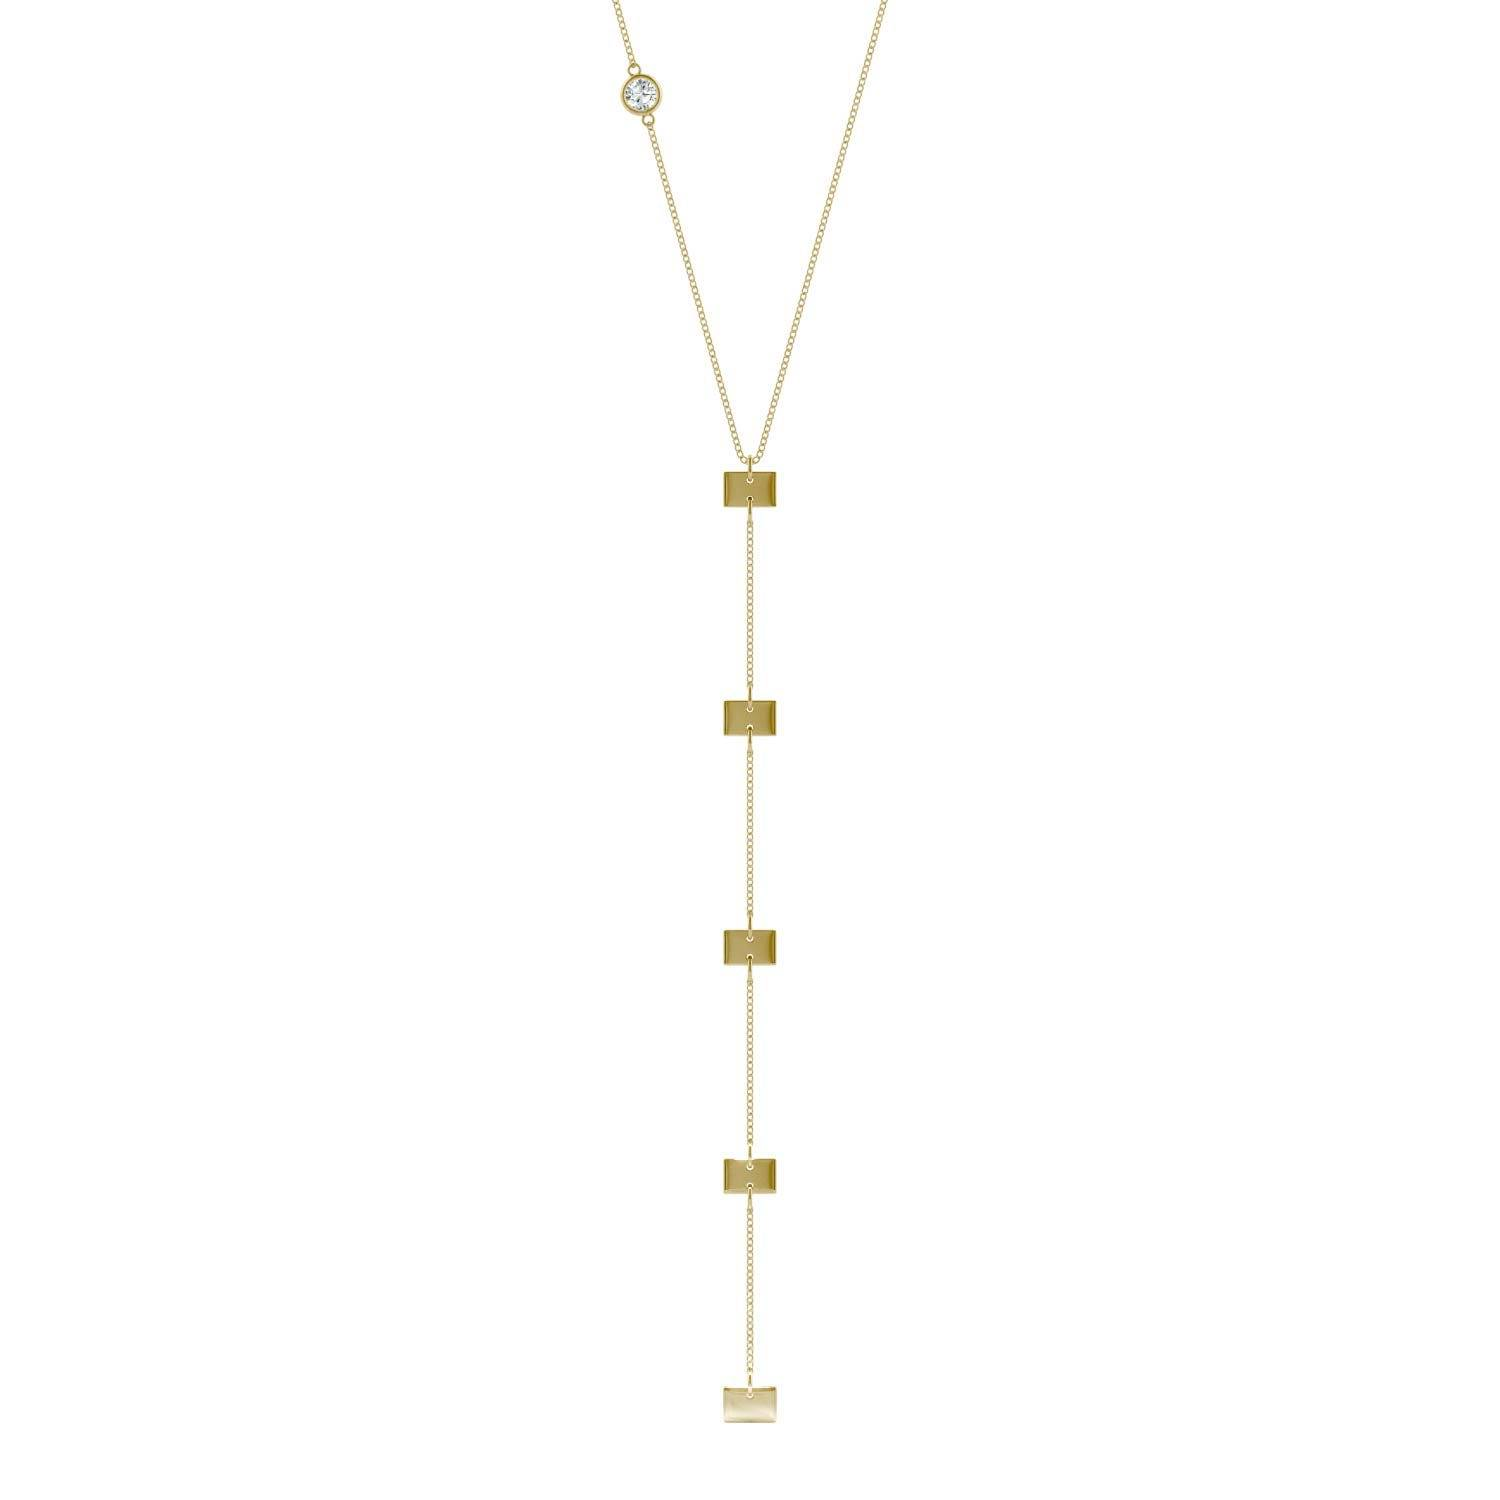 Charles & Colvard Square Drop Necklace in 14K Yellow Gold, 0.09CTW Round Forever One Moissanite Accent Stones Charles & Colvard  - Yellow Gold - Size: One Size